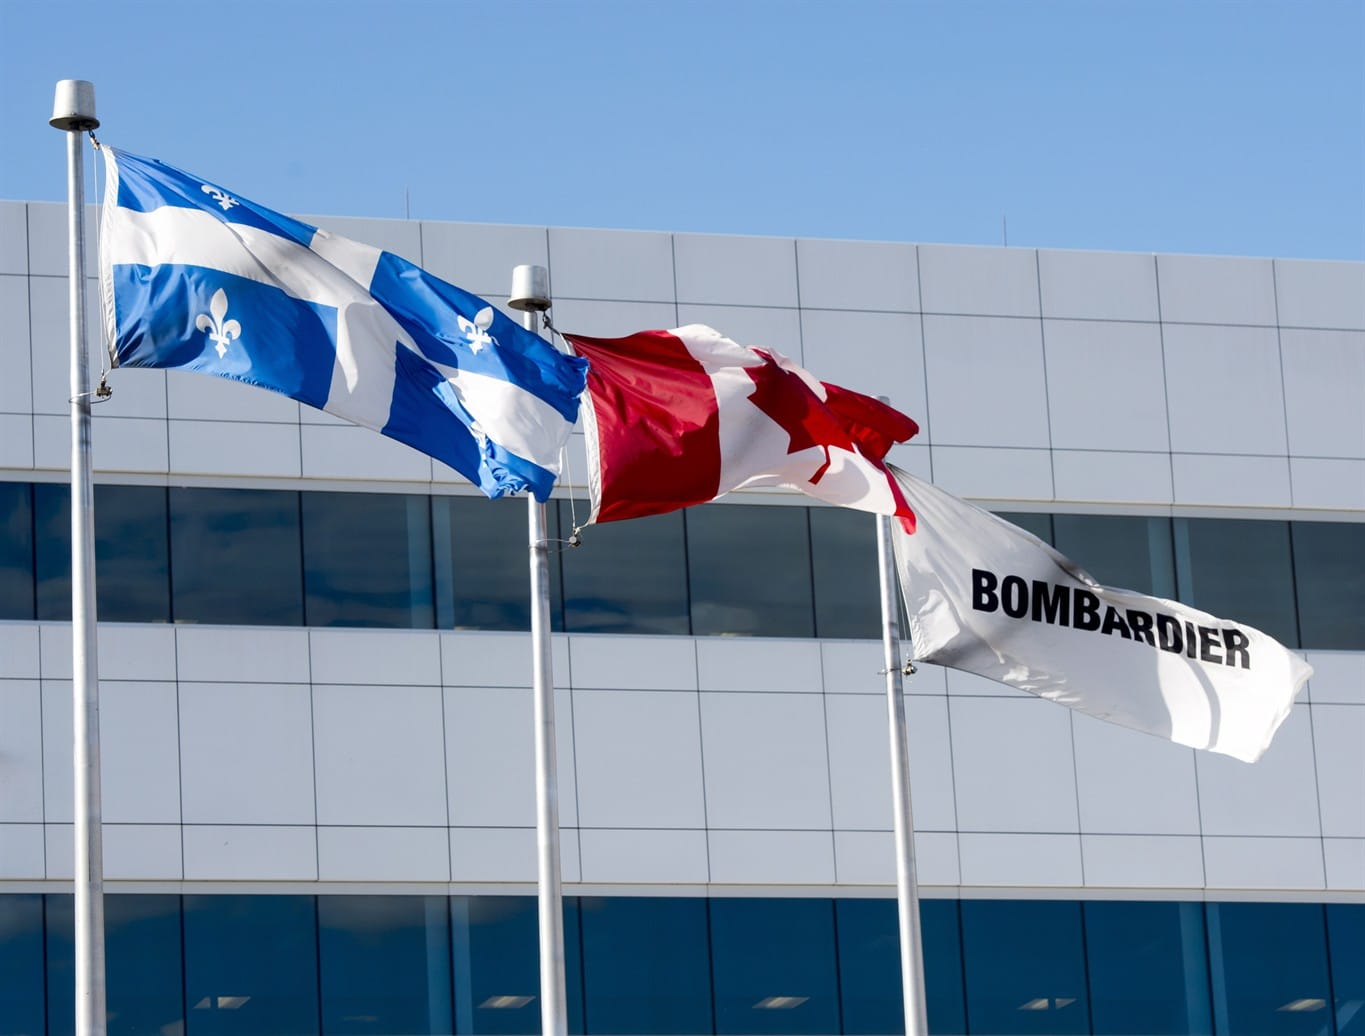 A national wind energy conference heard that Bombardier's trade battle with the U.S. is a warning sign.